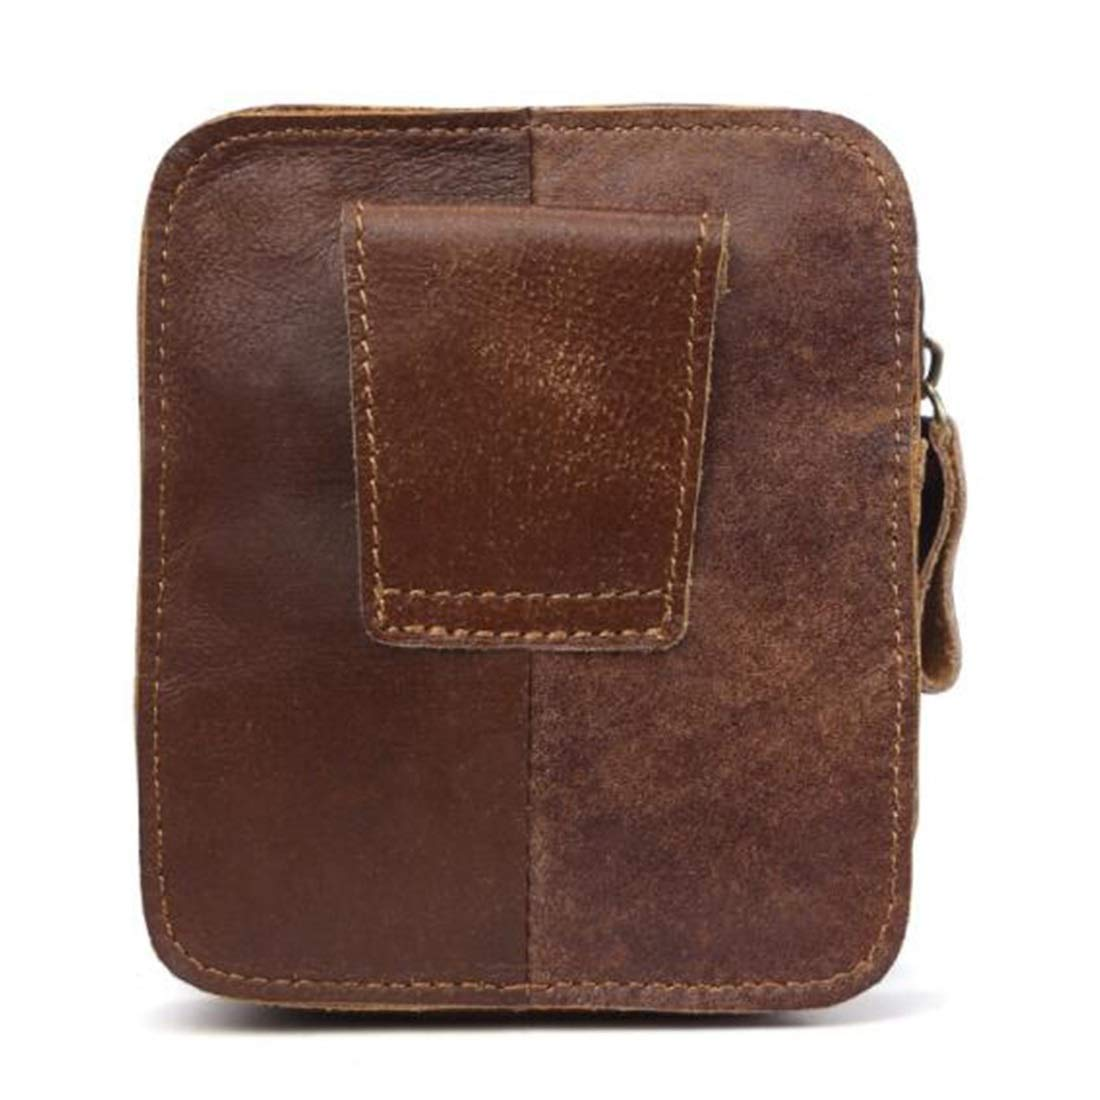 Color : B Adams chad West Bag Waist Pouch Body Bag Out go Mens Leather Made Large Capacity Belt Threading Possible